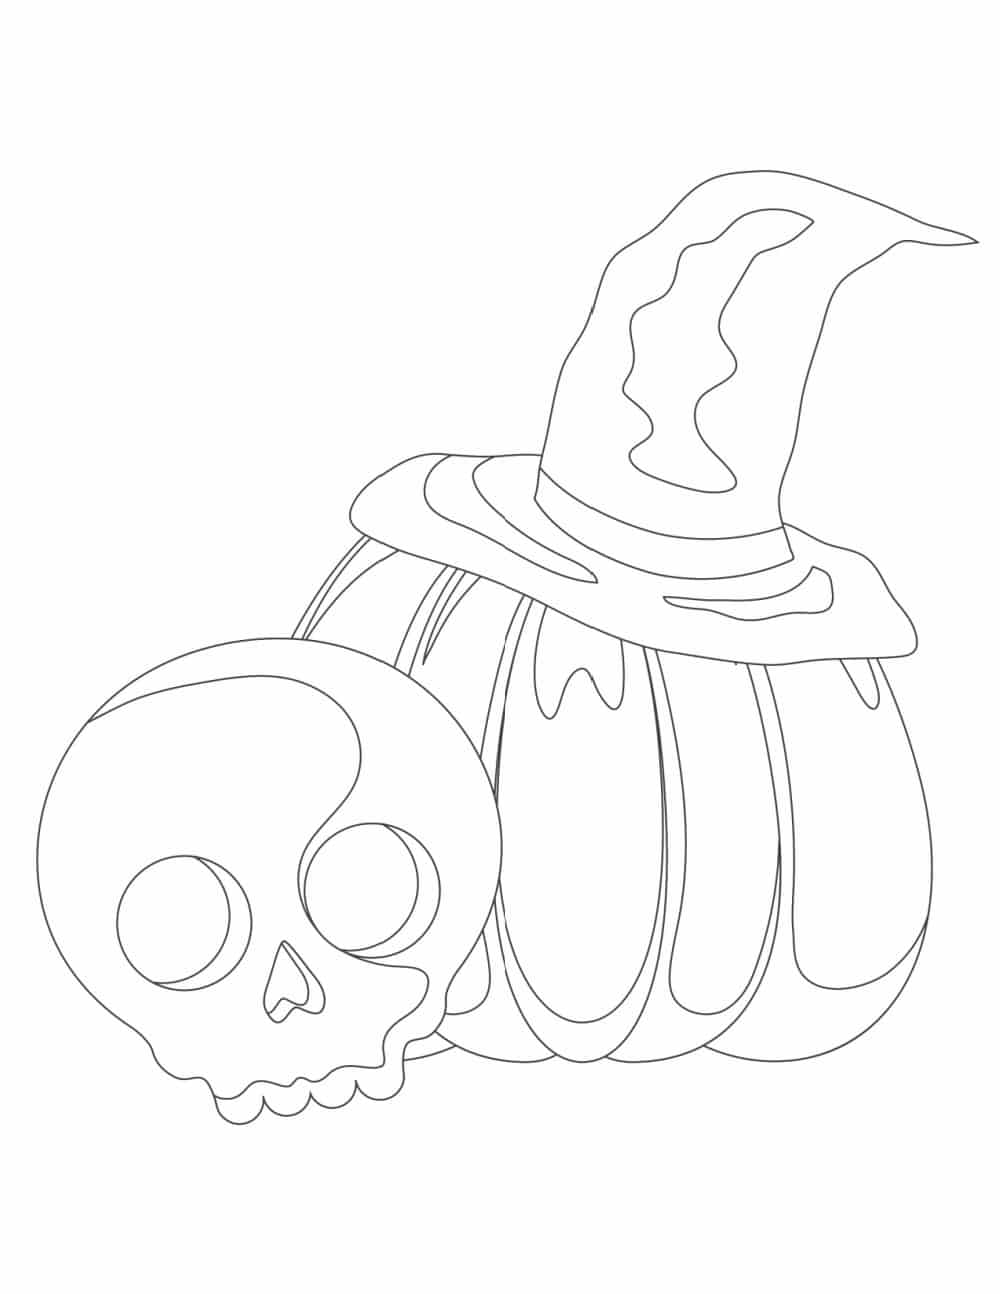 The skeleton and spooky pumpkin in these free printable Halloween coloring pages easy for kids will have you thinking creepy thoughts which makes them better suited to be Halloween coloring pages for adults or older kids.